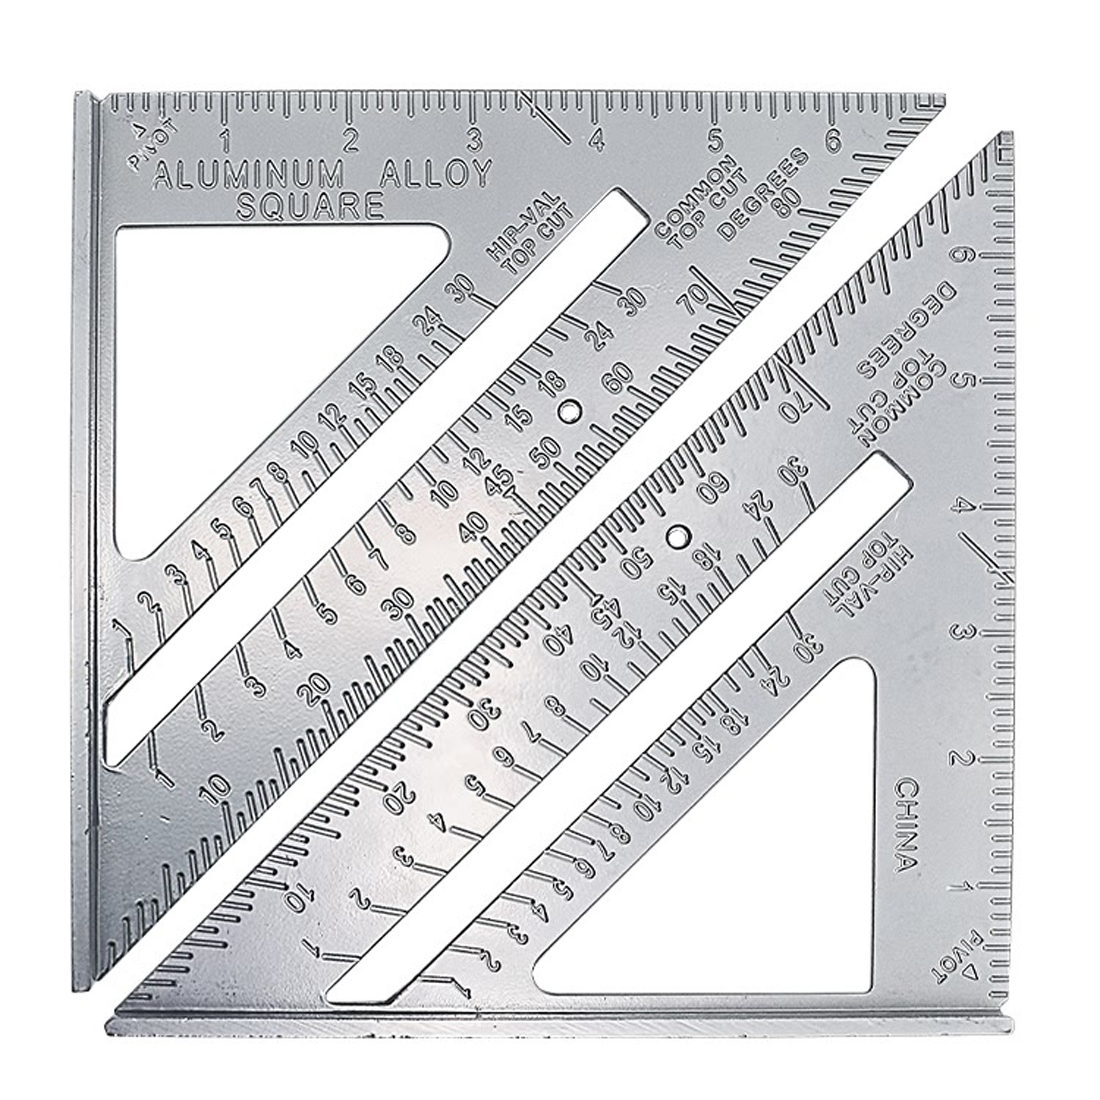 1pcs Aluminum Alloy Speed Square Protractor Miter Framing Tri-square Line Scriber Saw Guide Square Carpenter Ruler Measurement